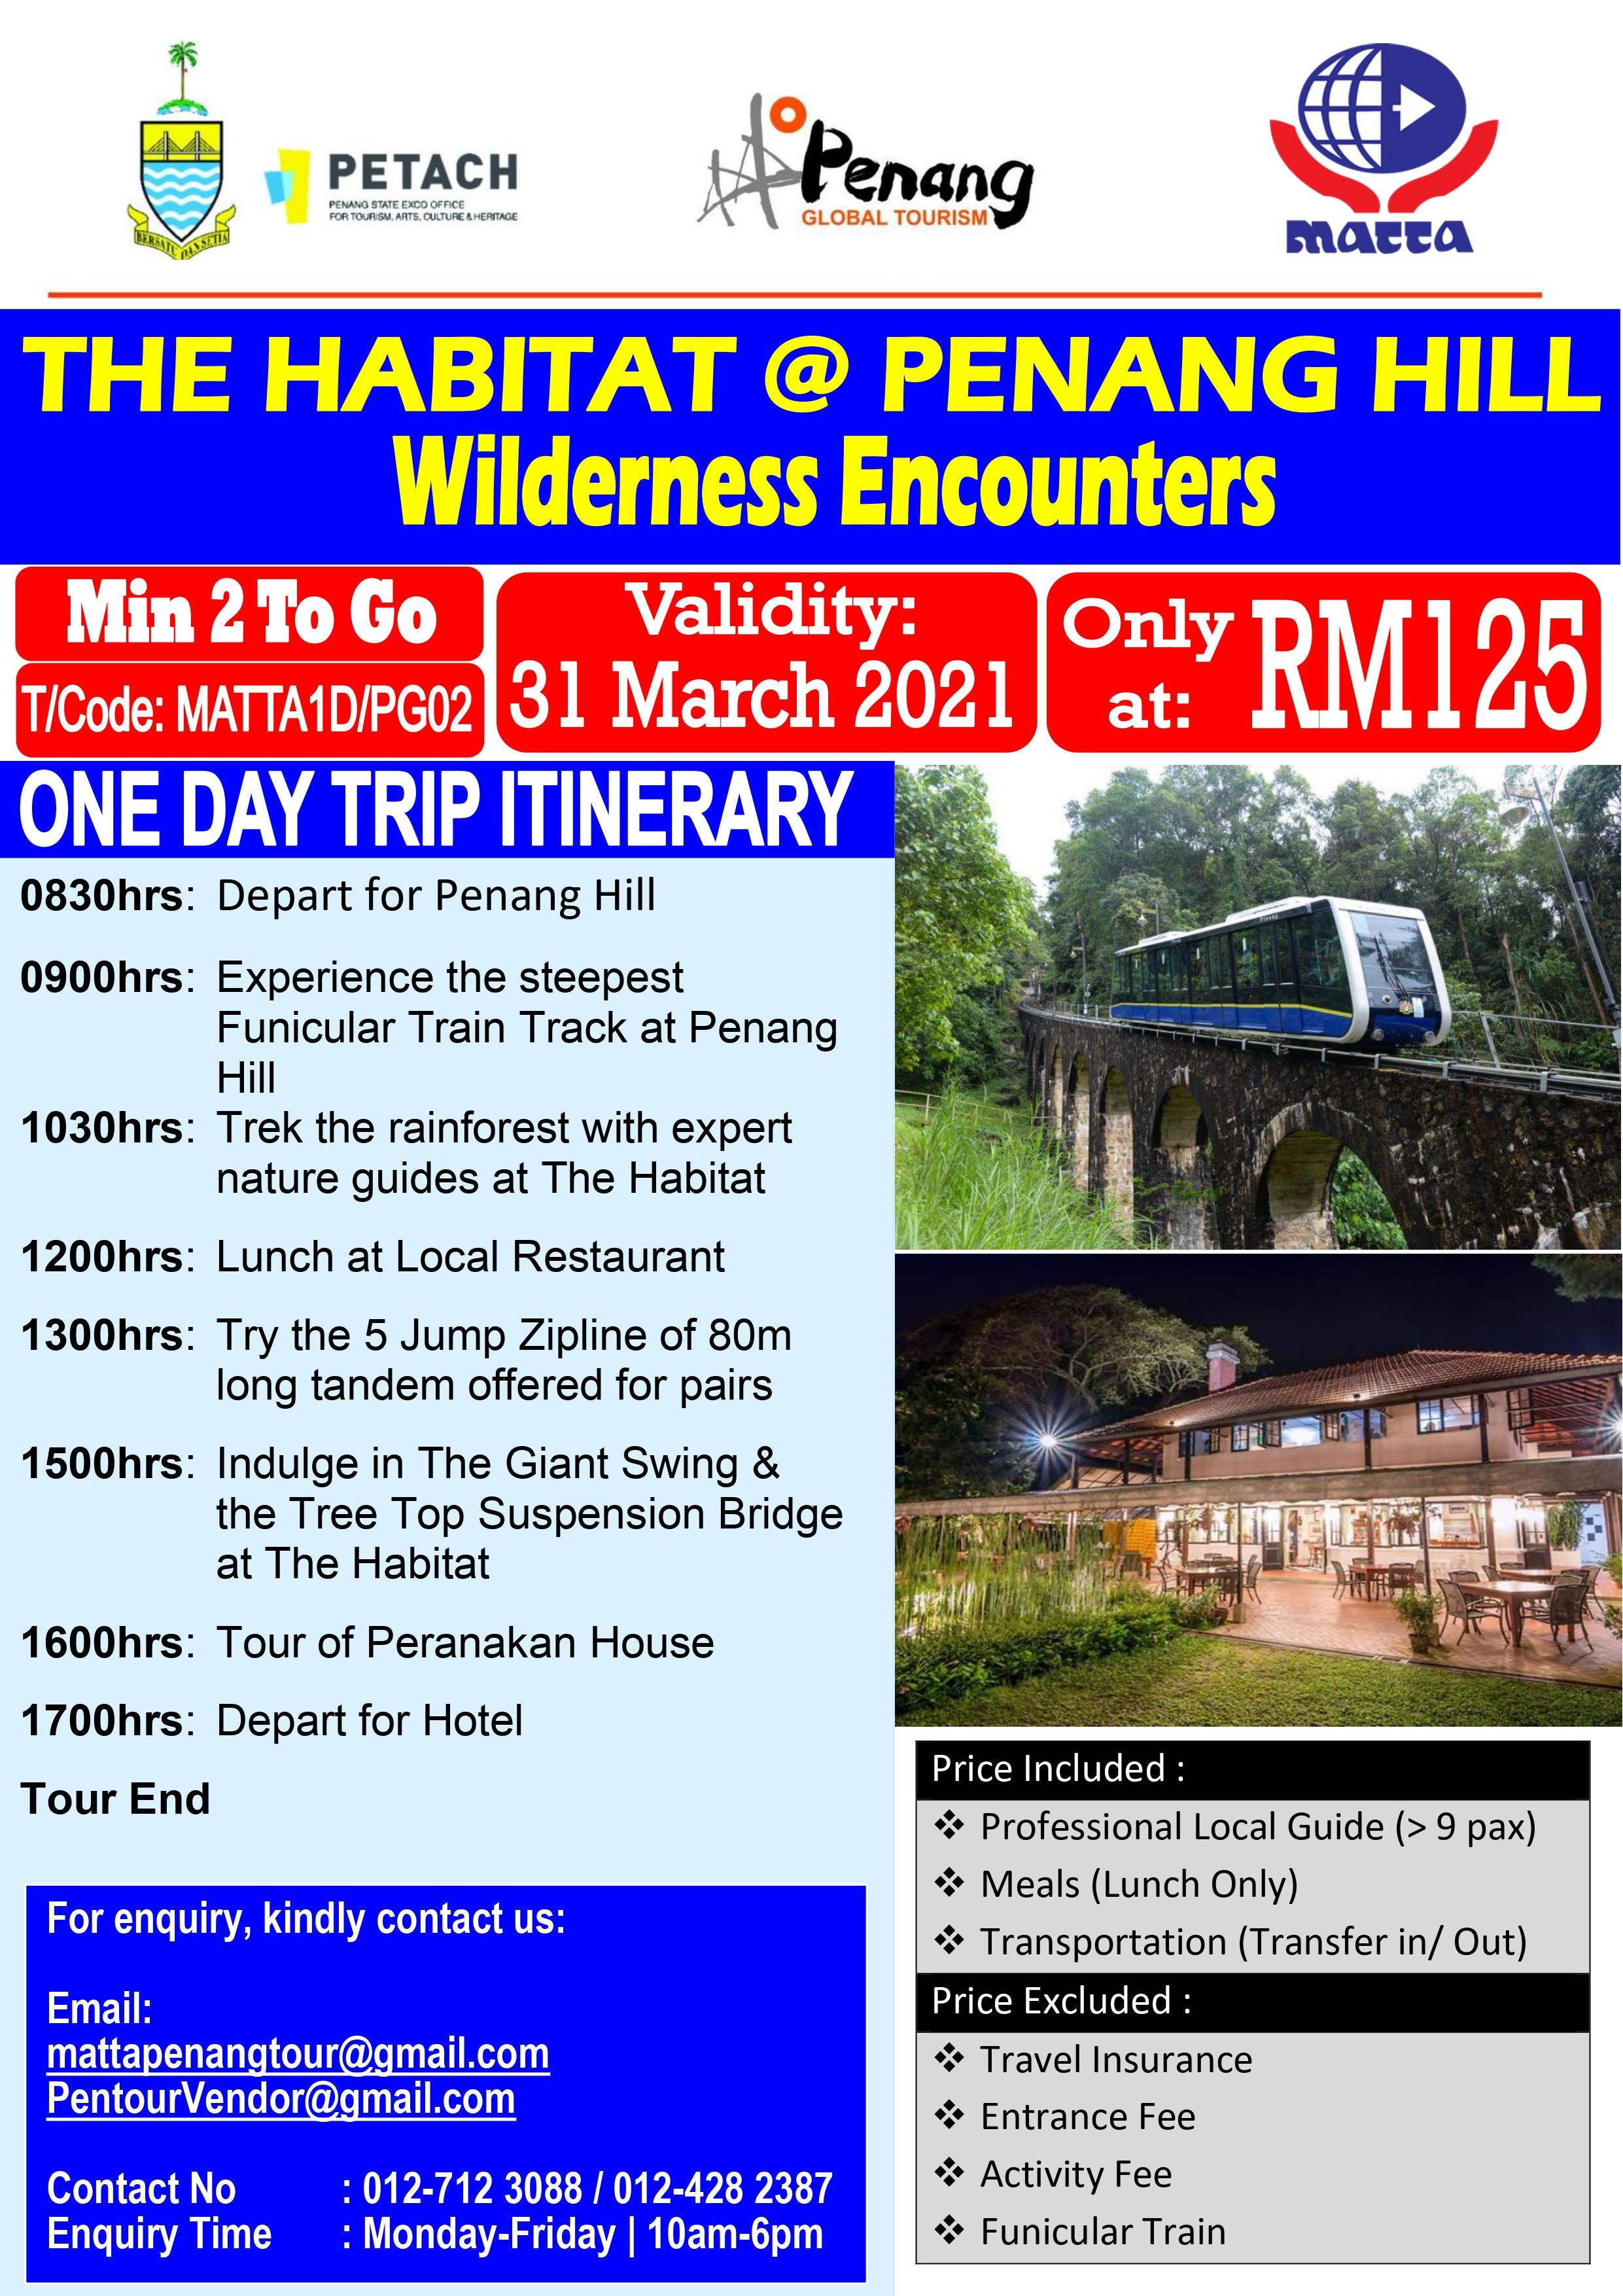 The Habitat at Penang Hill - 1 Day